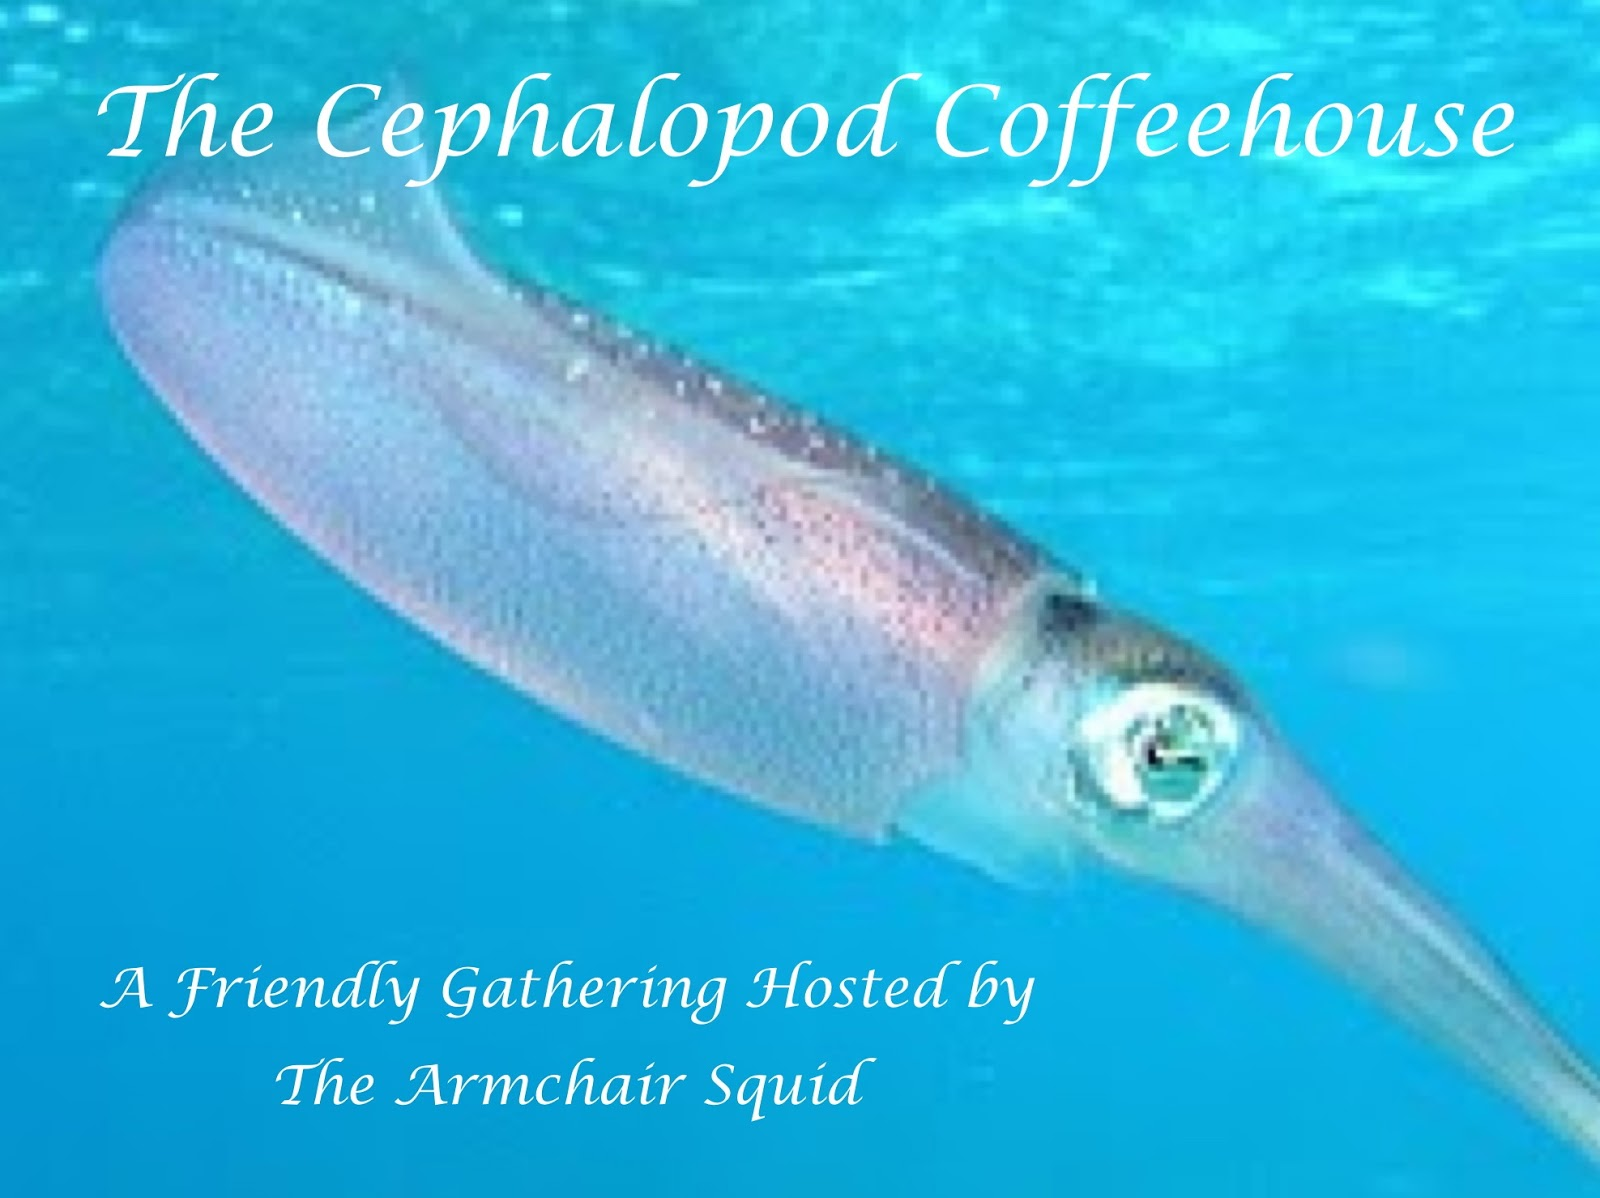 Cephalopod Coffeehouse